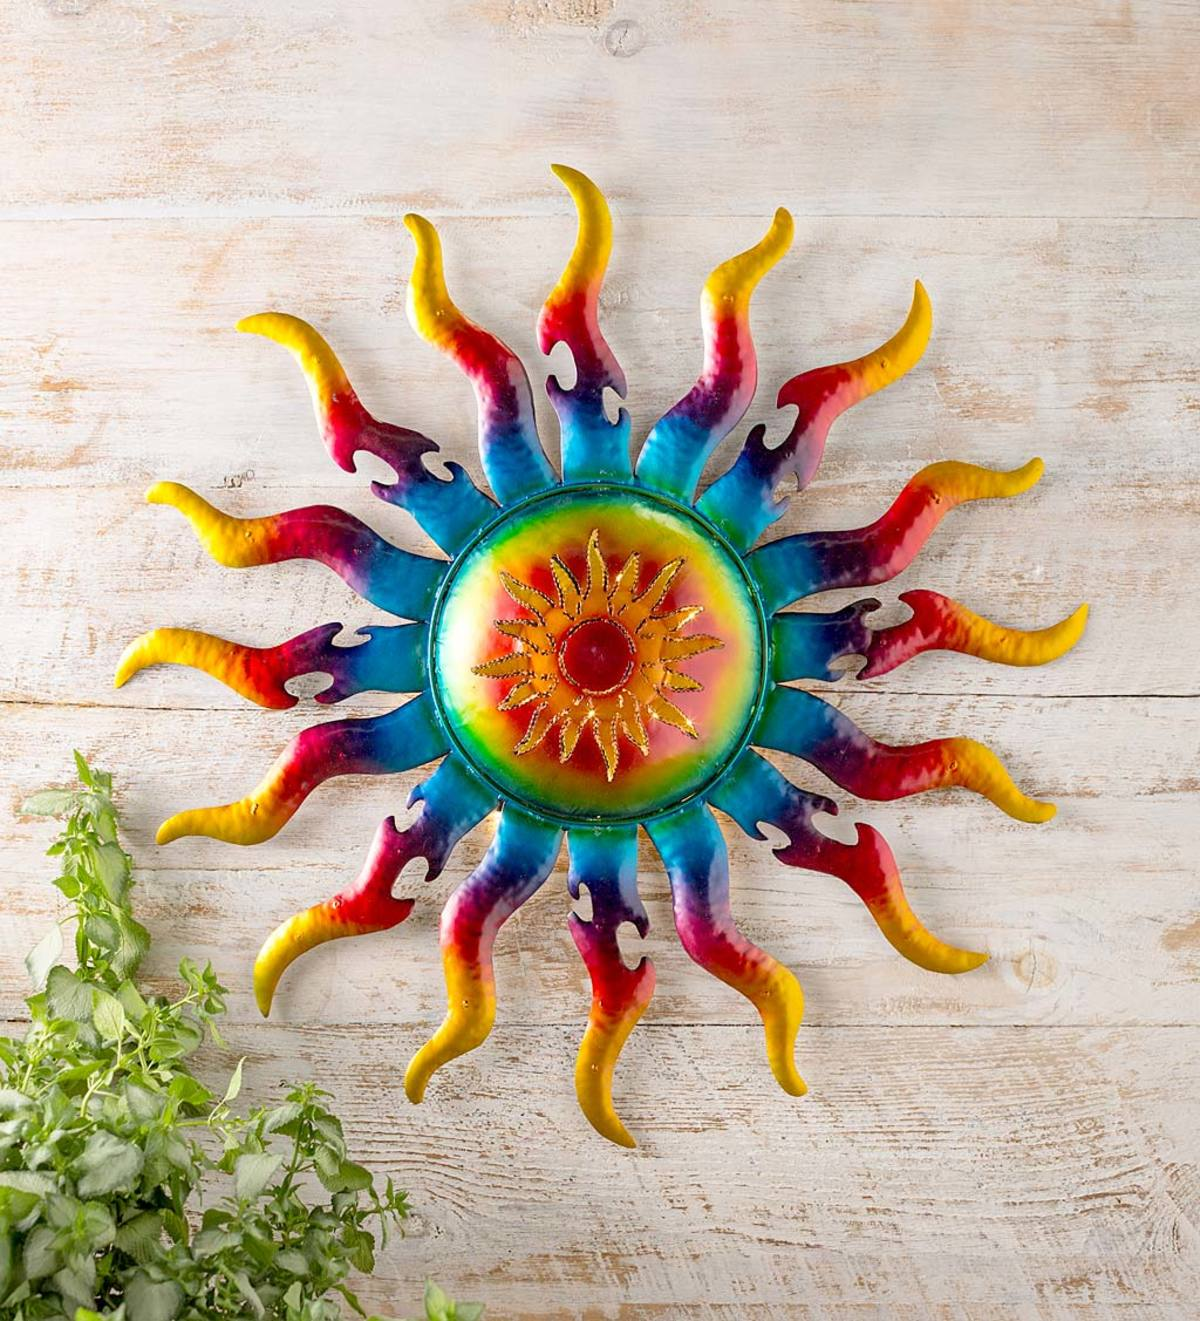 Handcrafted Lighted Metal Sun Wall Art